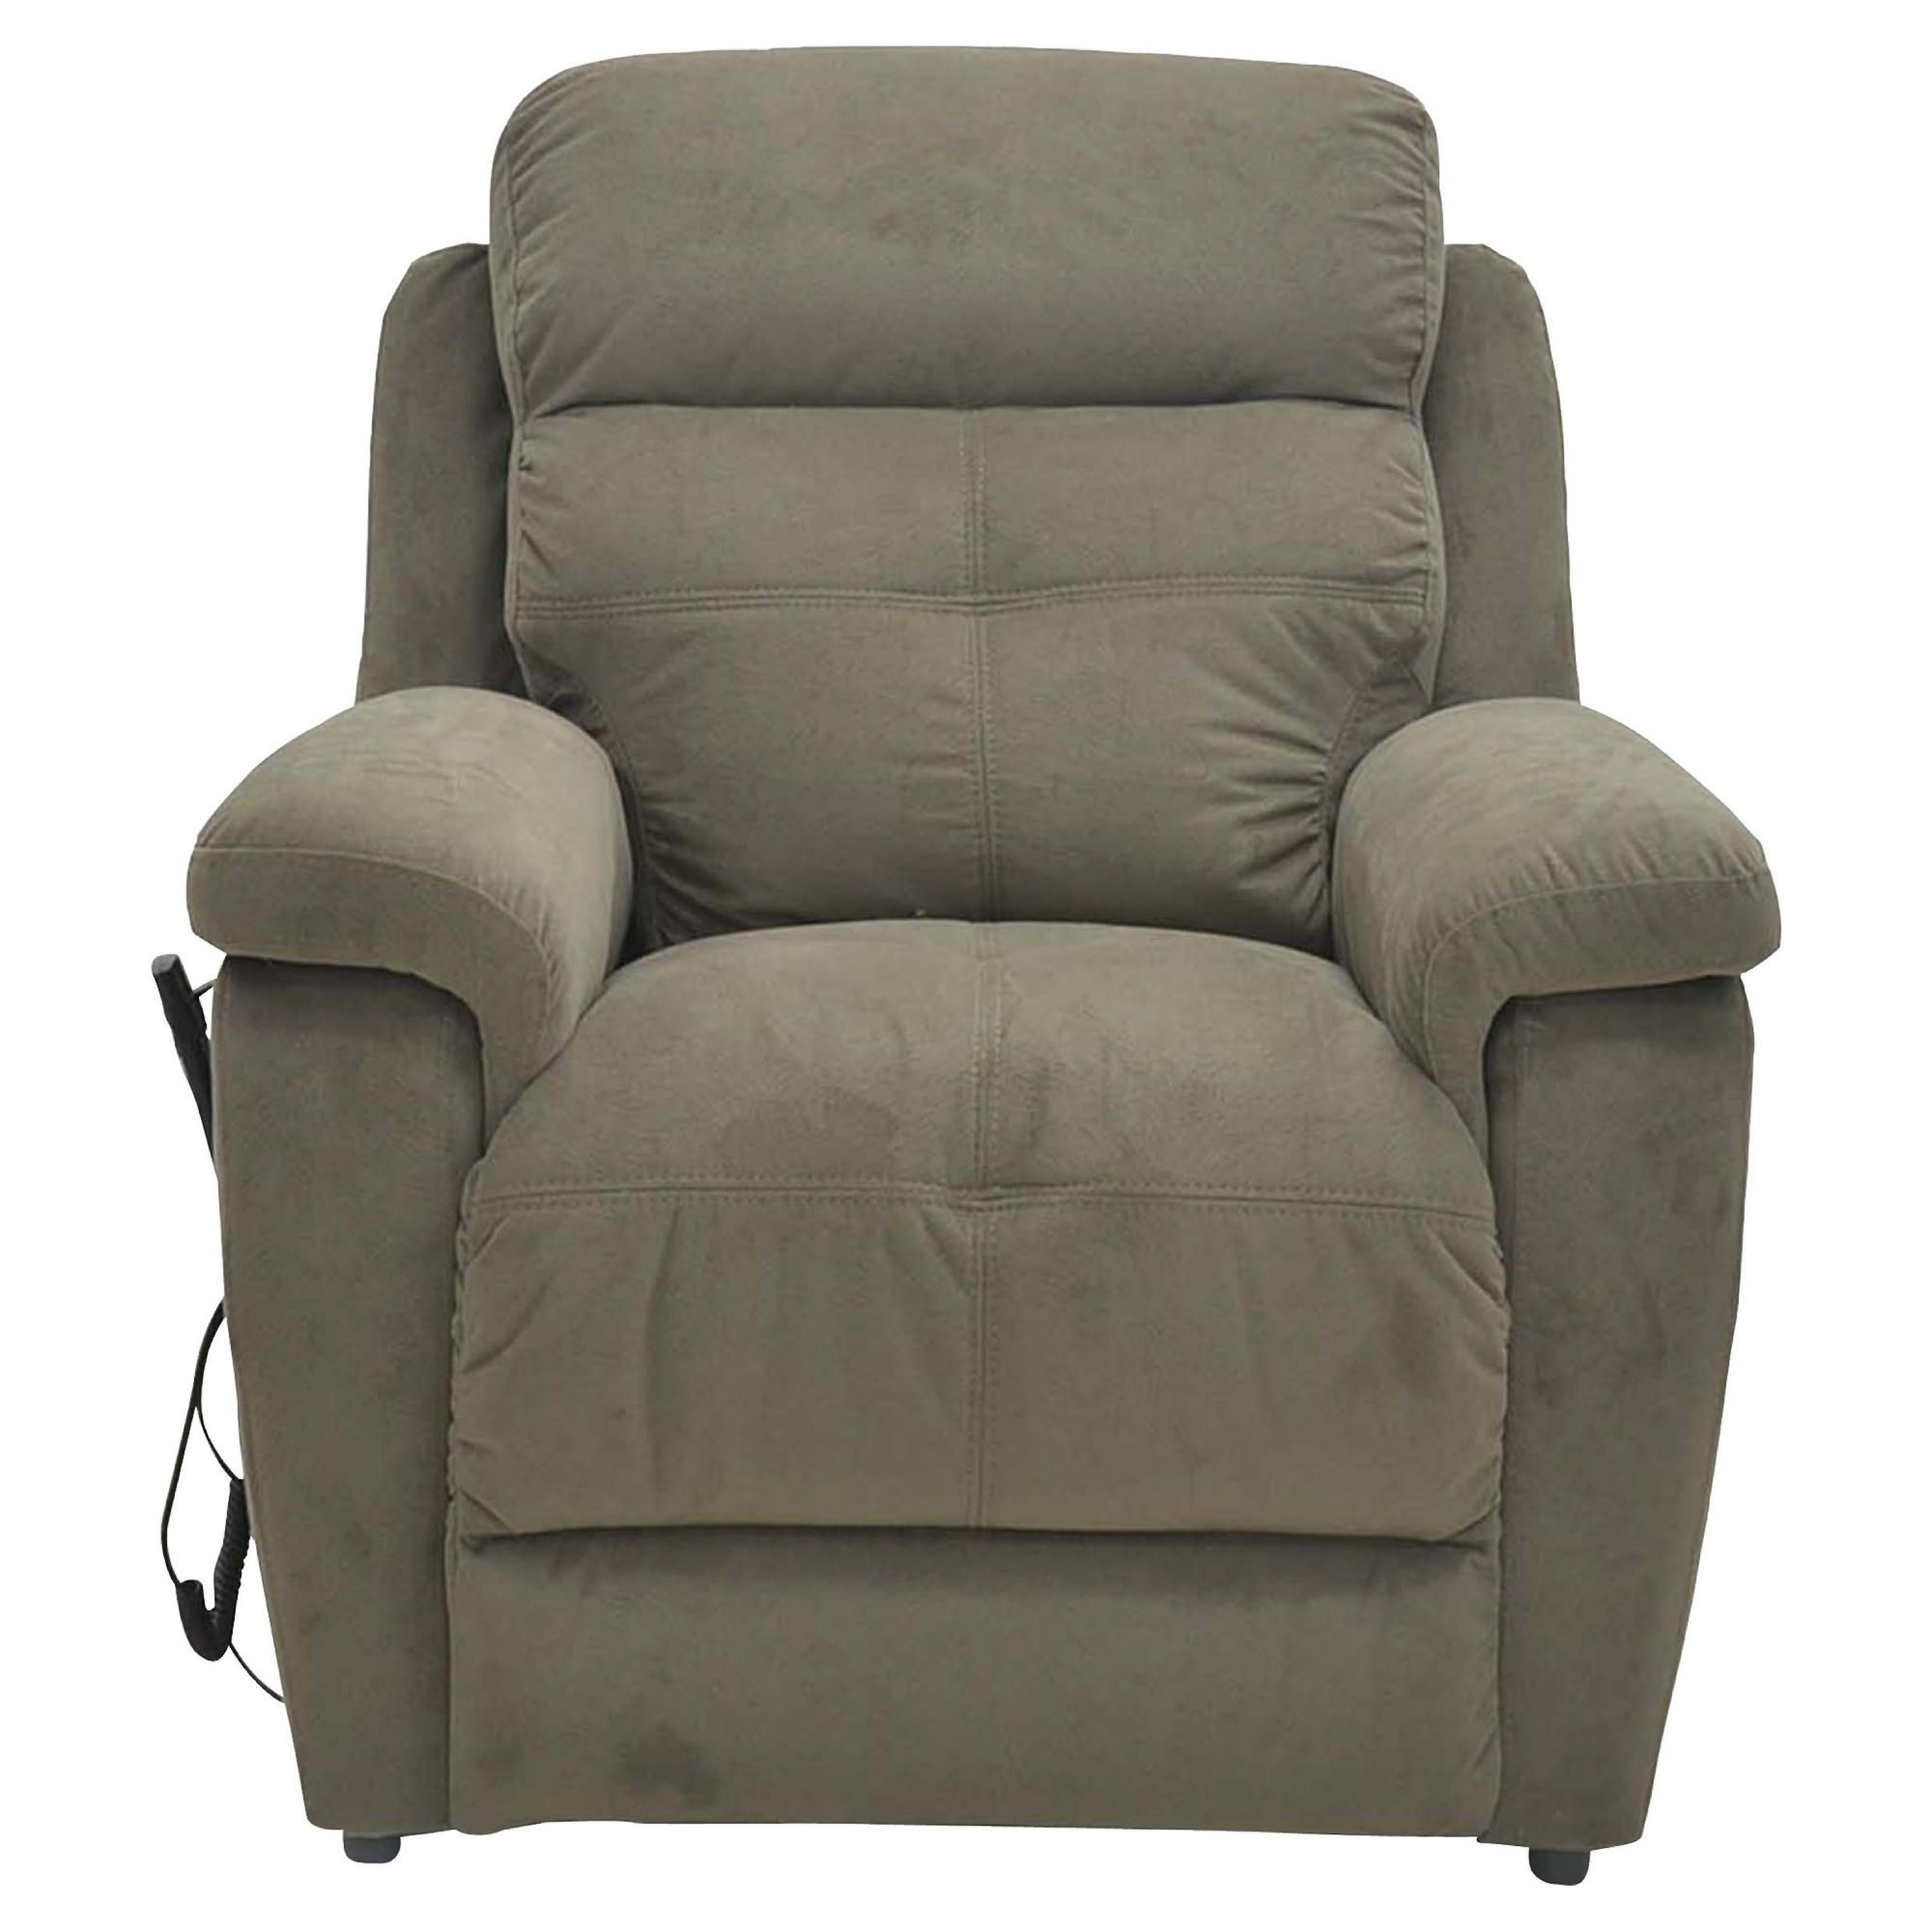 Fabric Power Lift Recliner Chair Brown at Tesco Direct